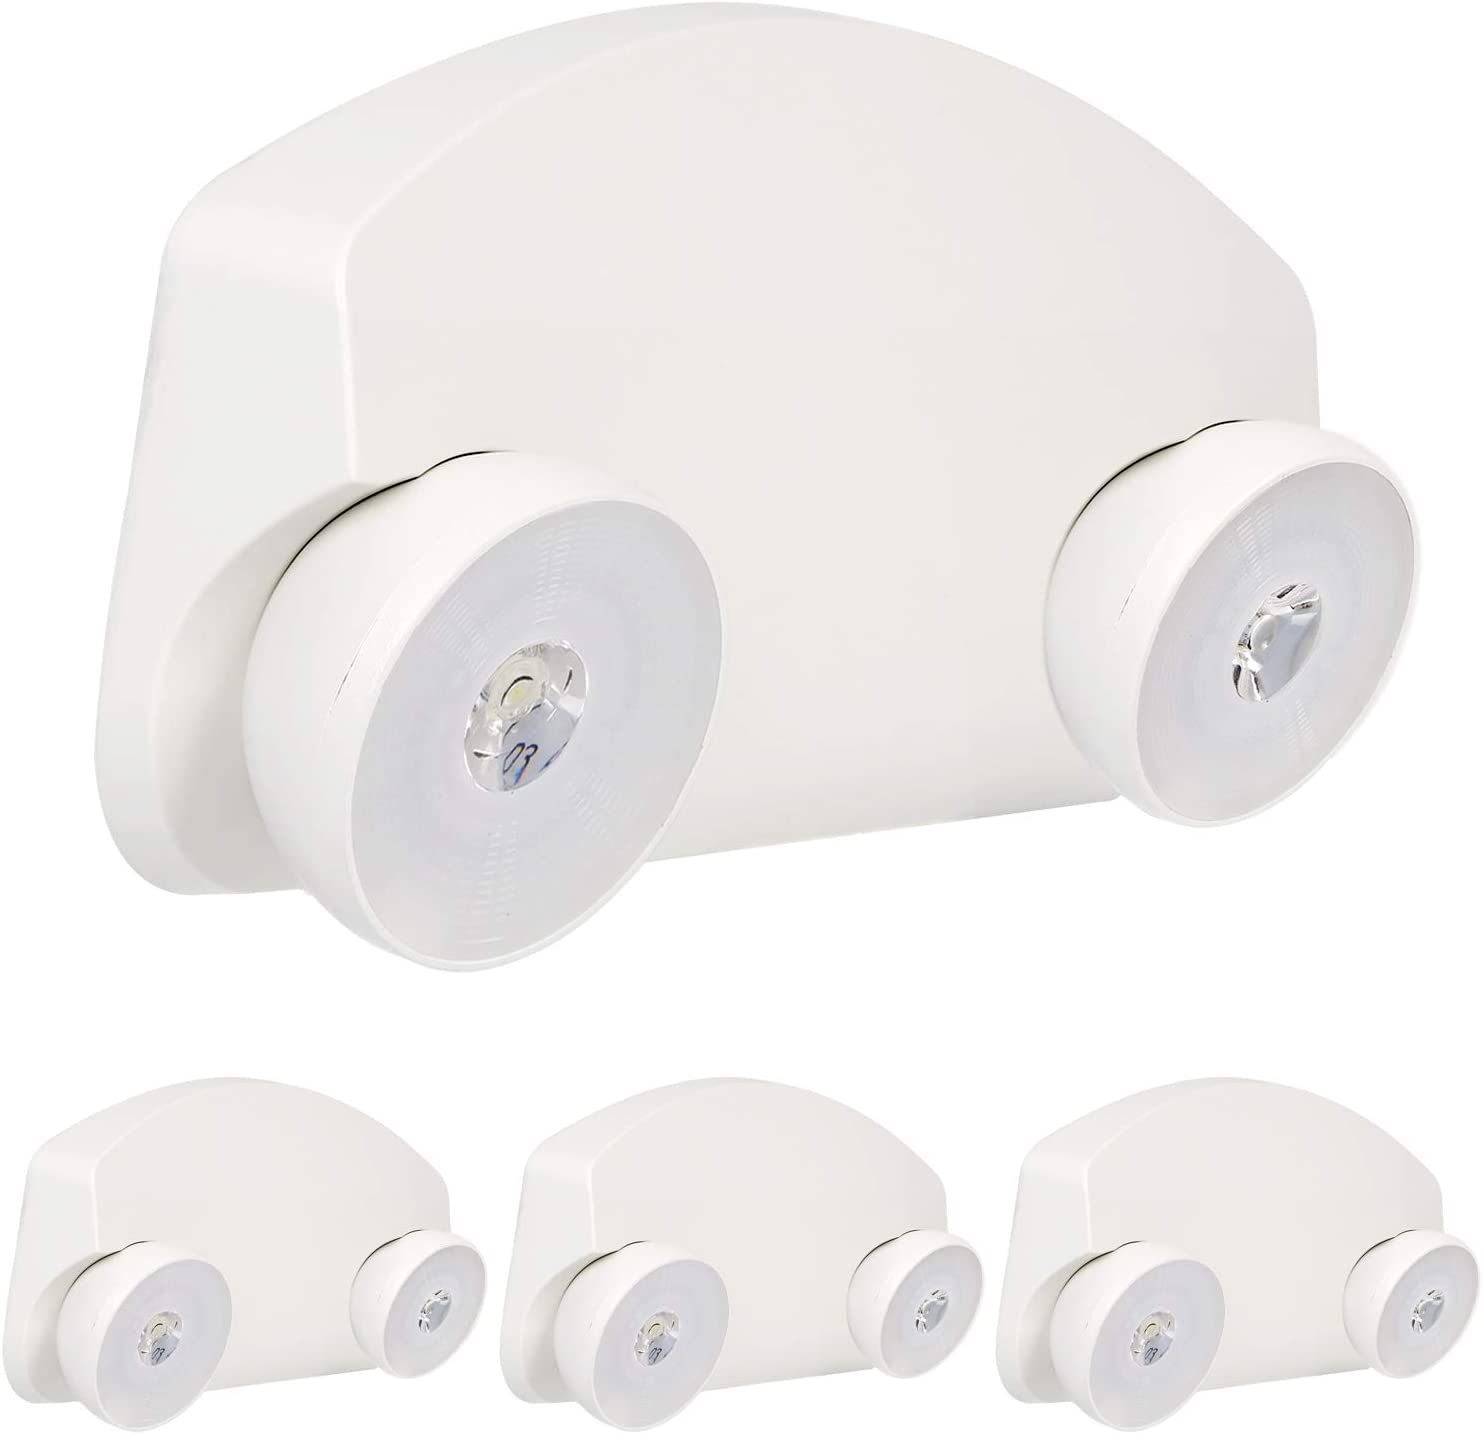 LED Emergency Lights with Battery Backup, 120-277V AC, Low Profile, Adjustable Two Head - 4 Pack